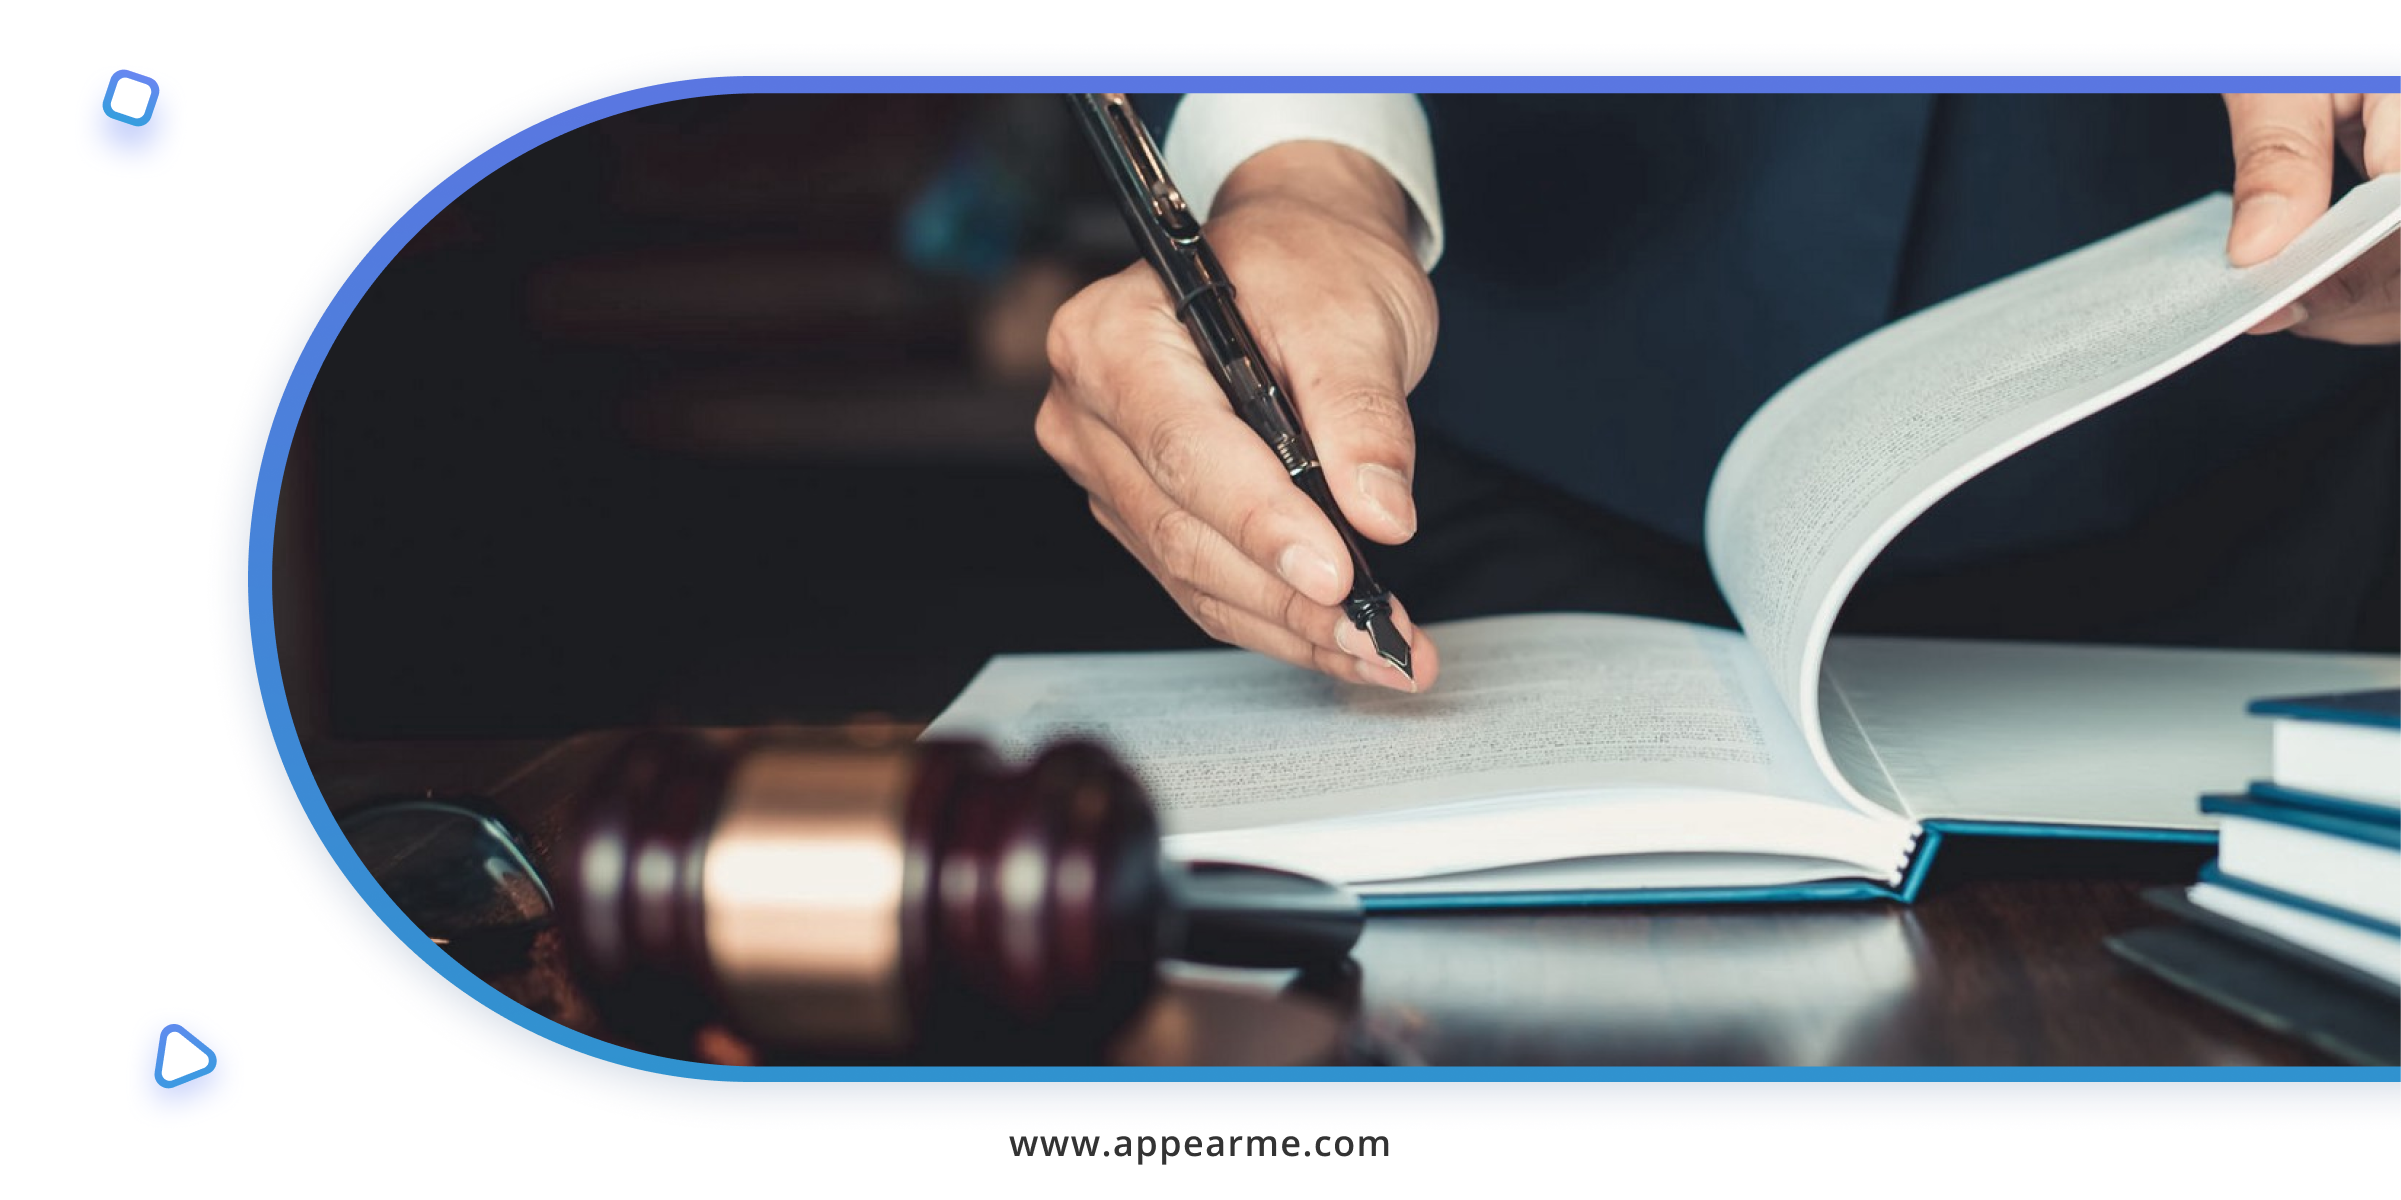 Court Appearance Service Providing Hearing Coverage Nationwide